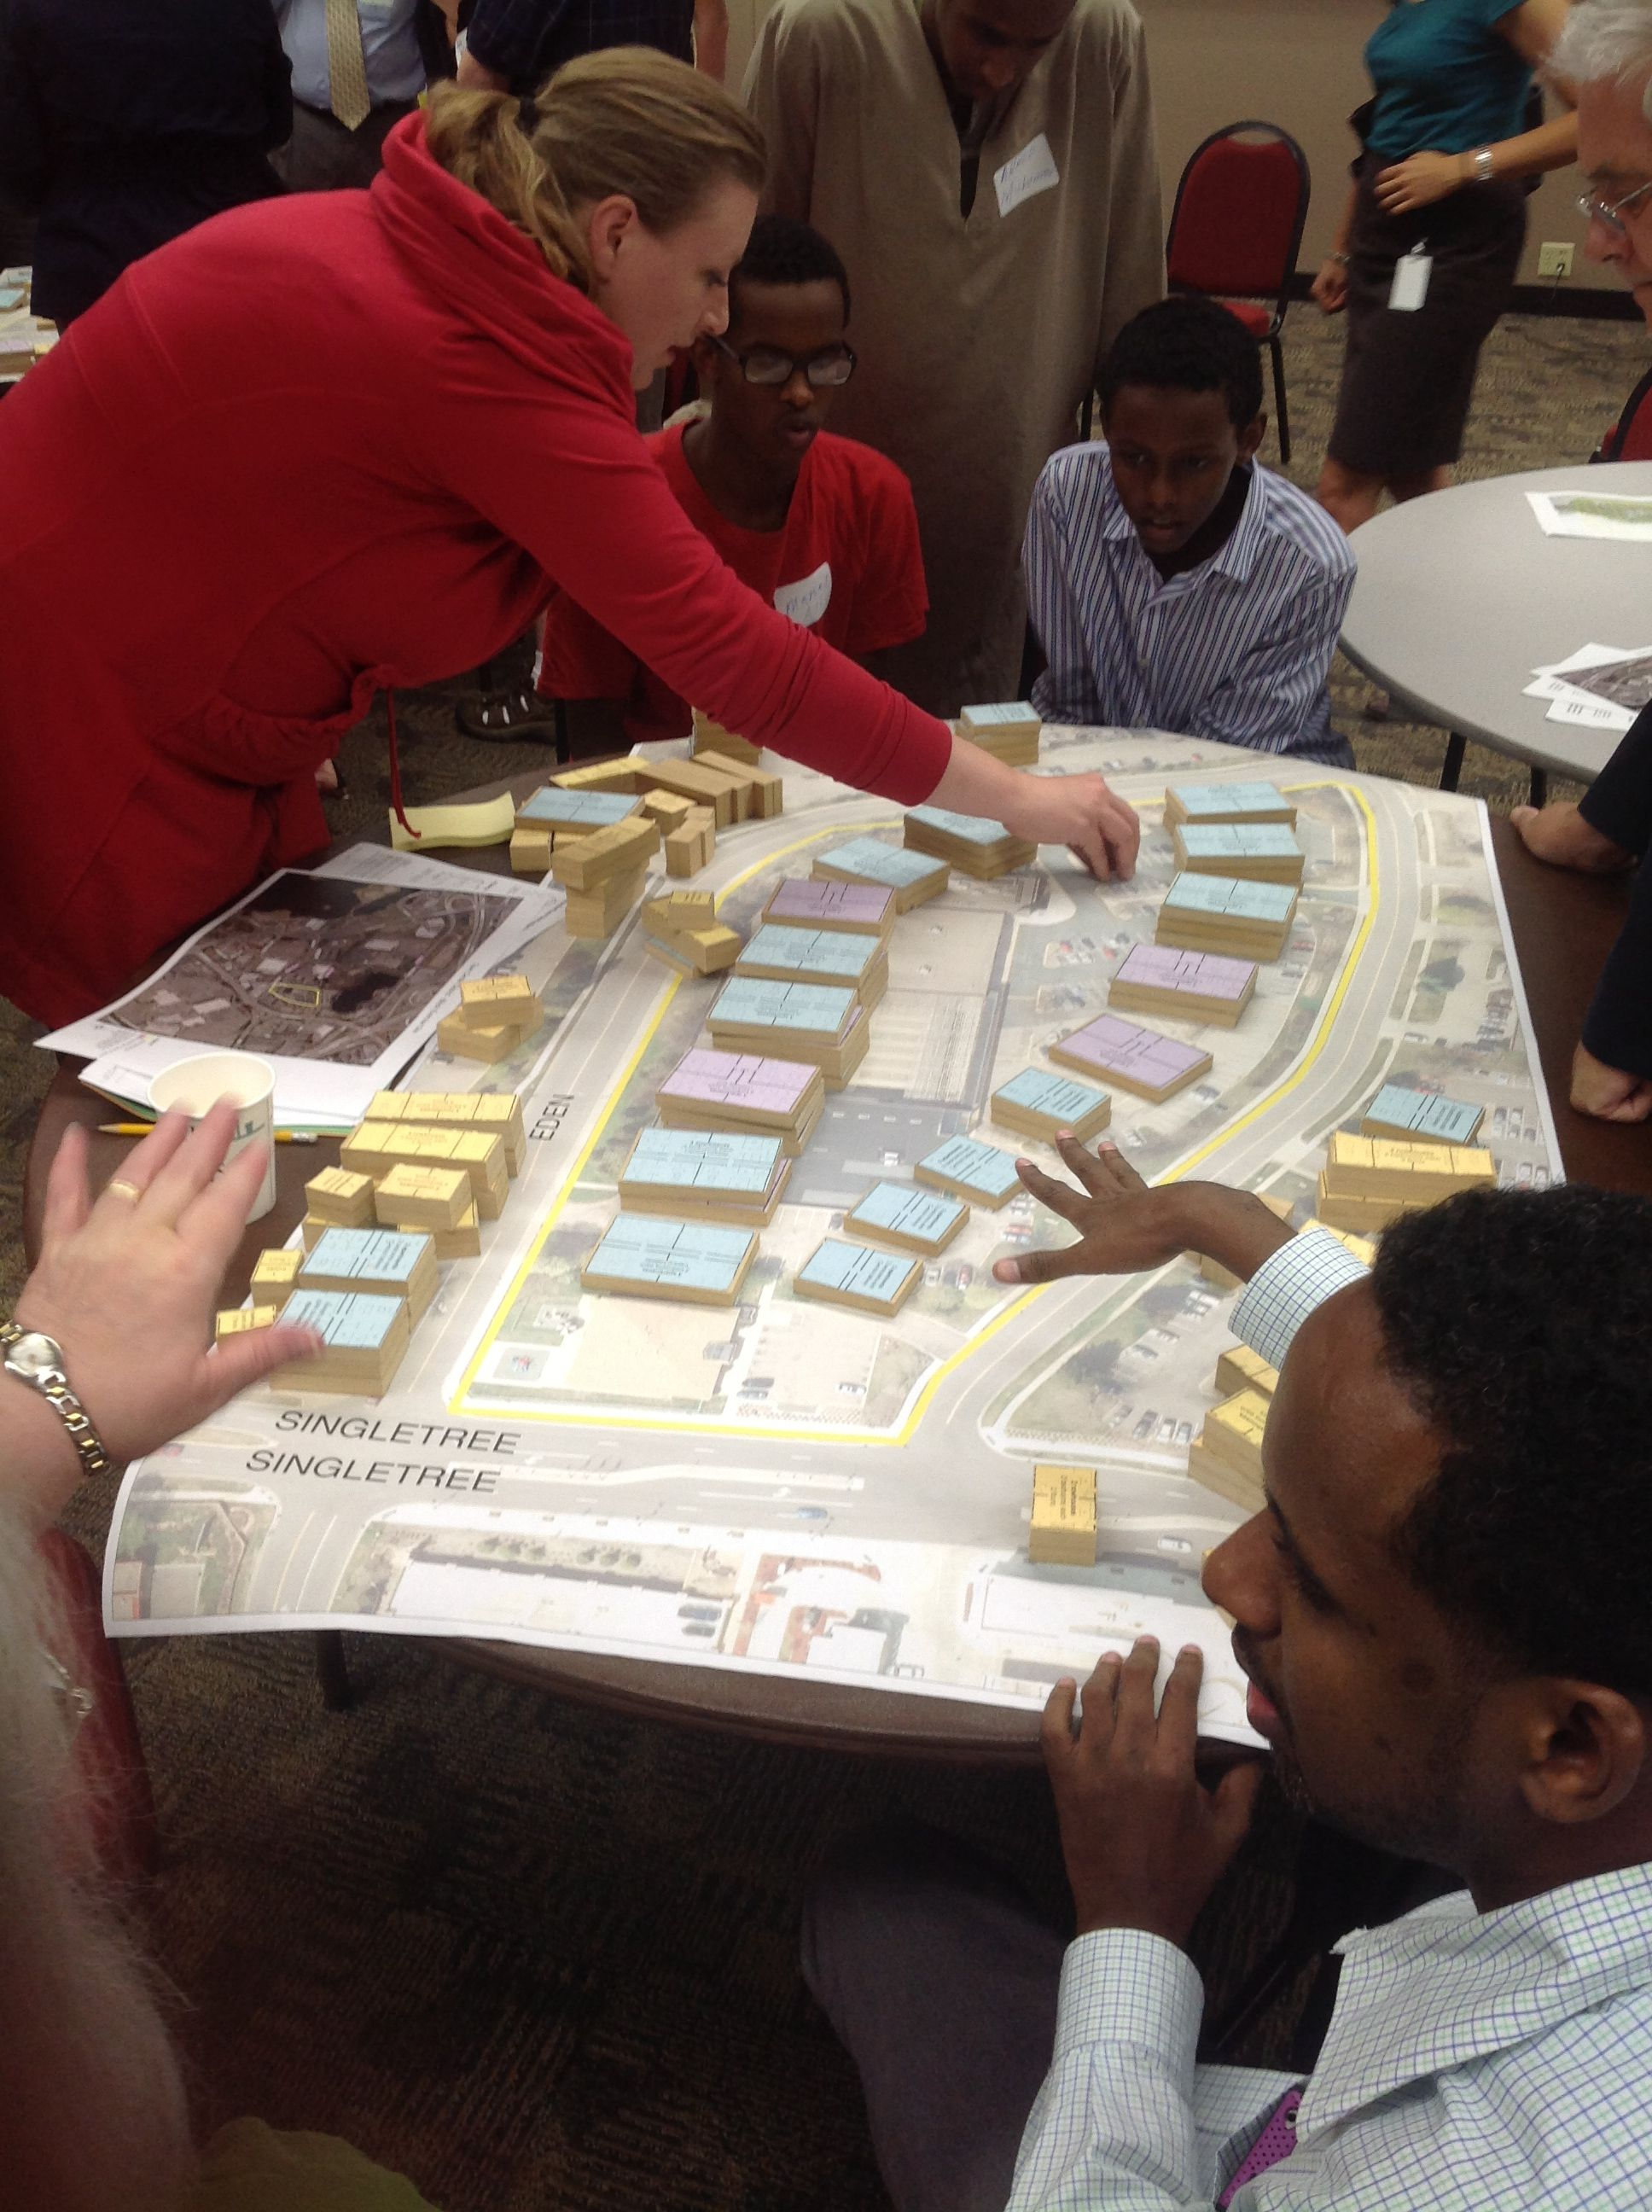 Community advocacy and non-profit organizations are essential partners in community planning, visioning and organizing work to support TOD (and overcome NIMBYism)  photo: Twin Cities LISC